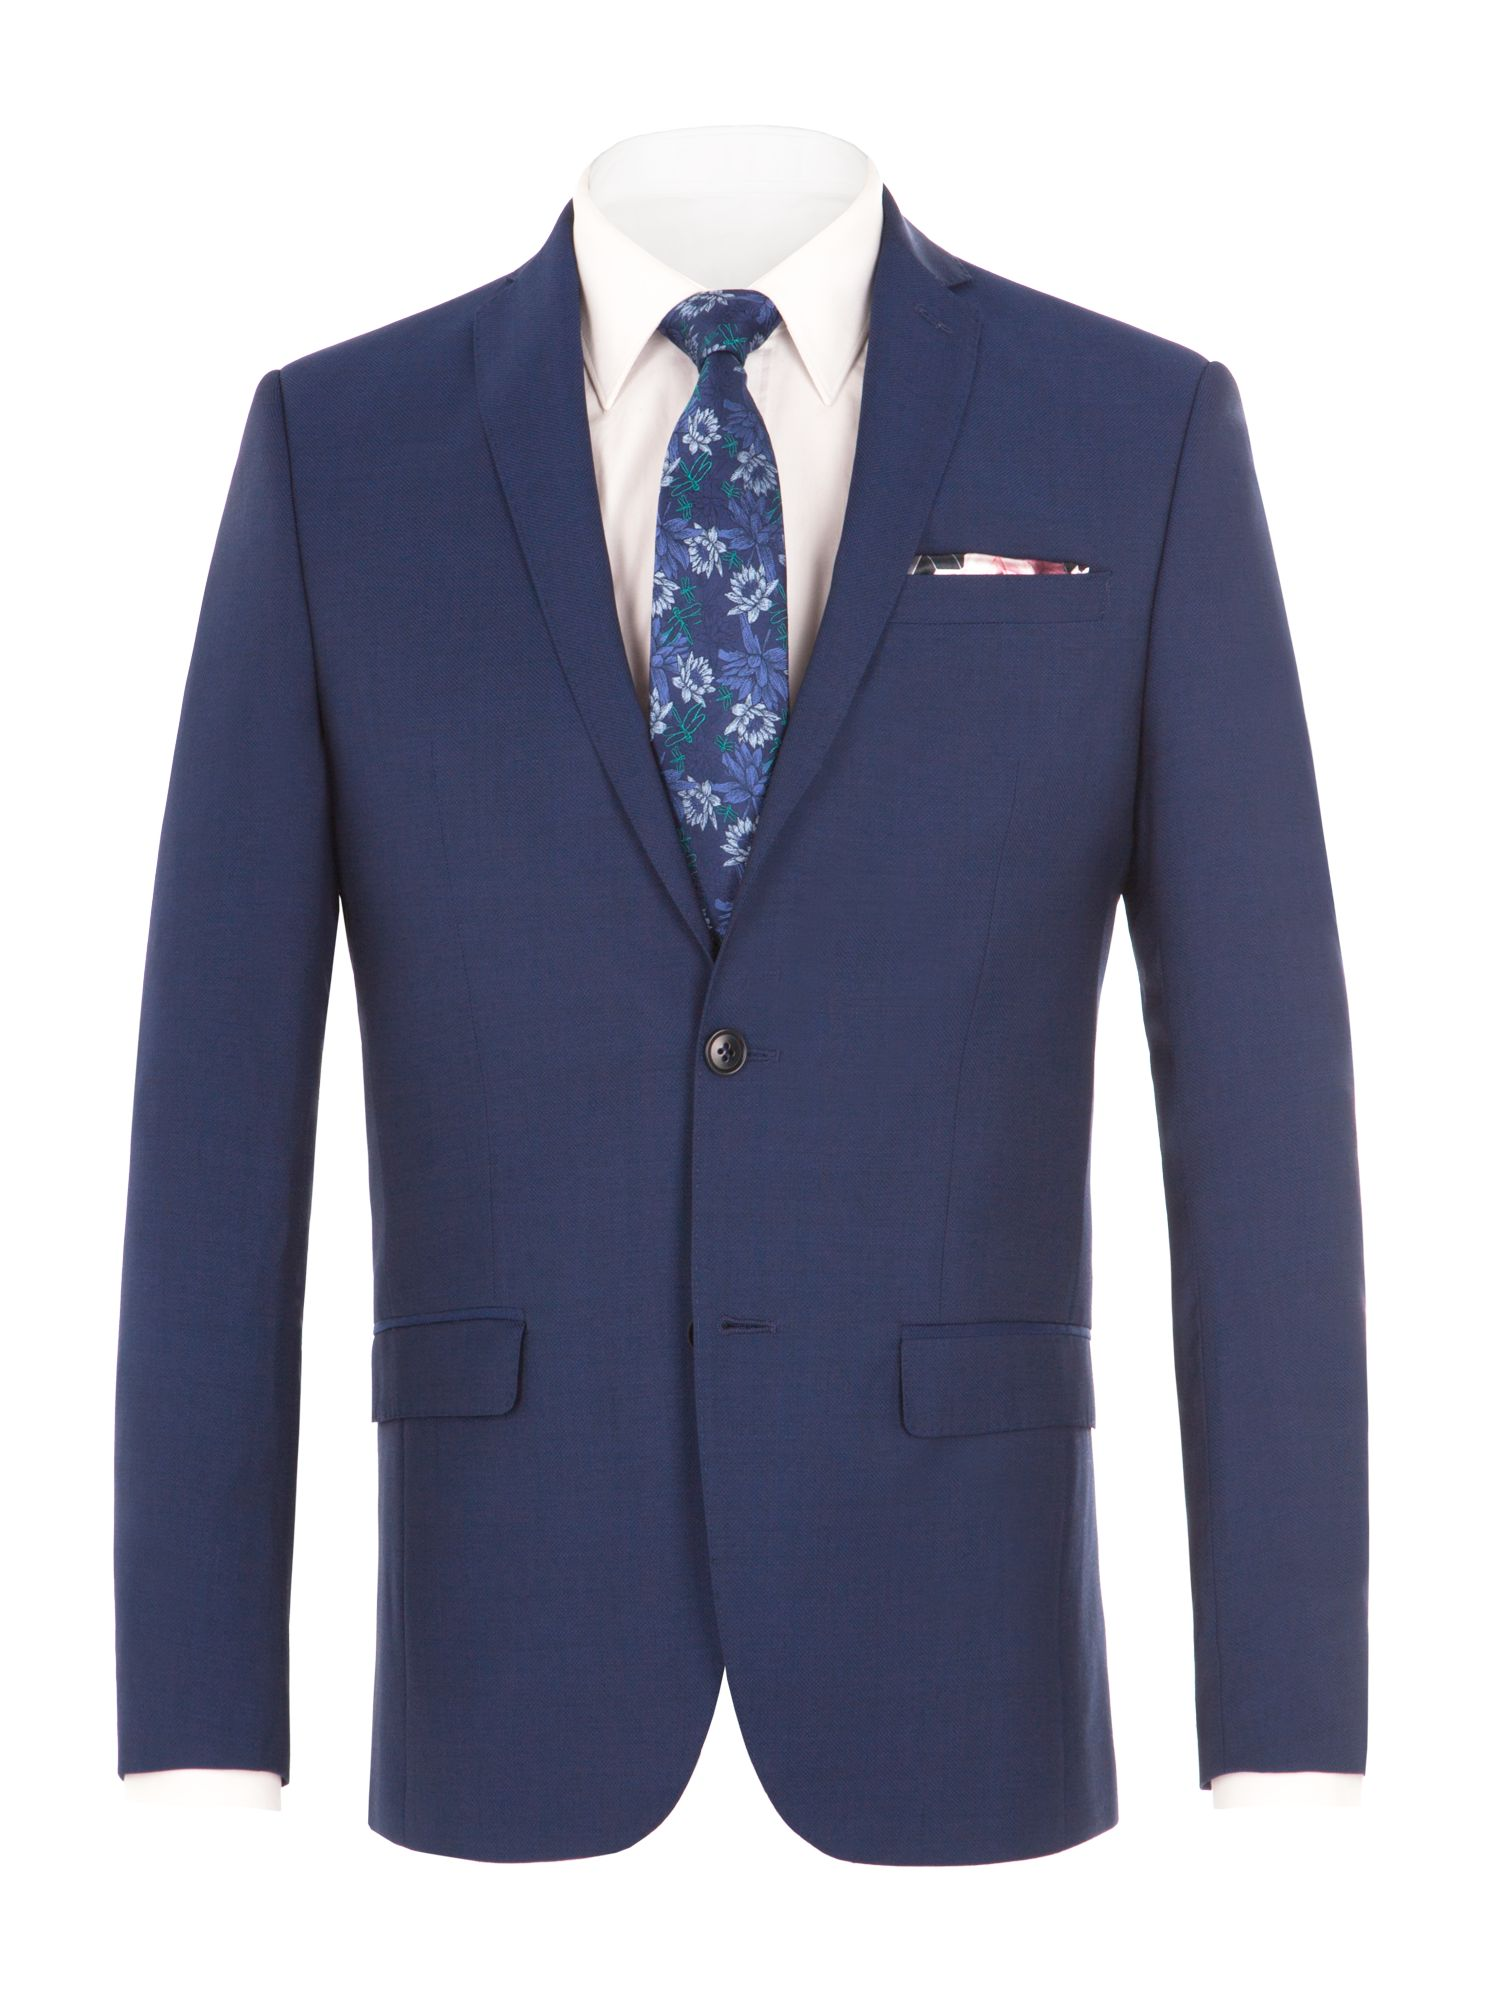 Alexandre of England Men's Alexandre of England Leadenhall Blue Suit Jacket, Blue